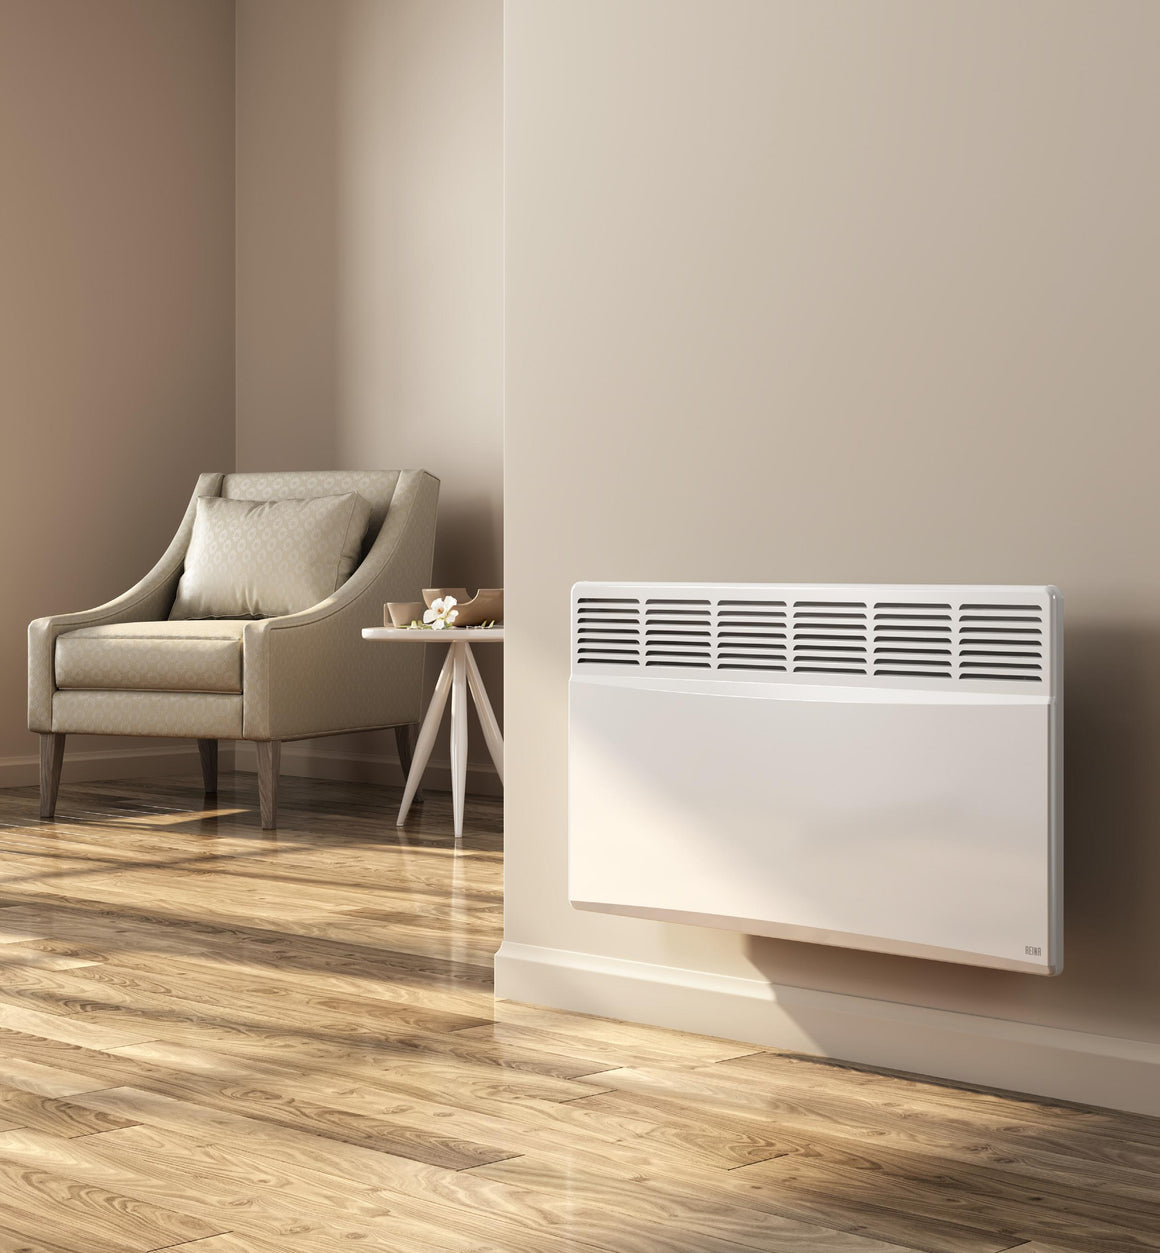 Optima Electric Radiator